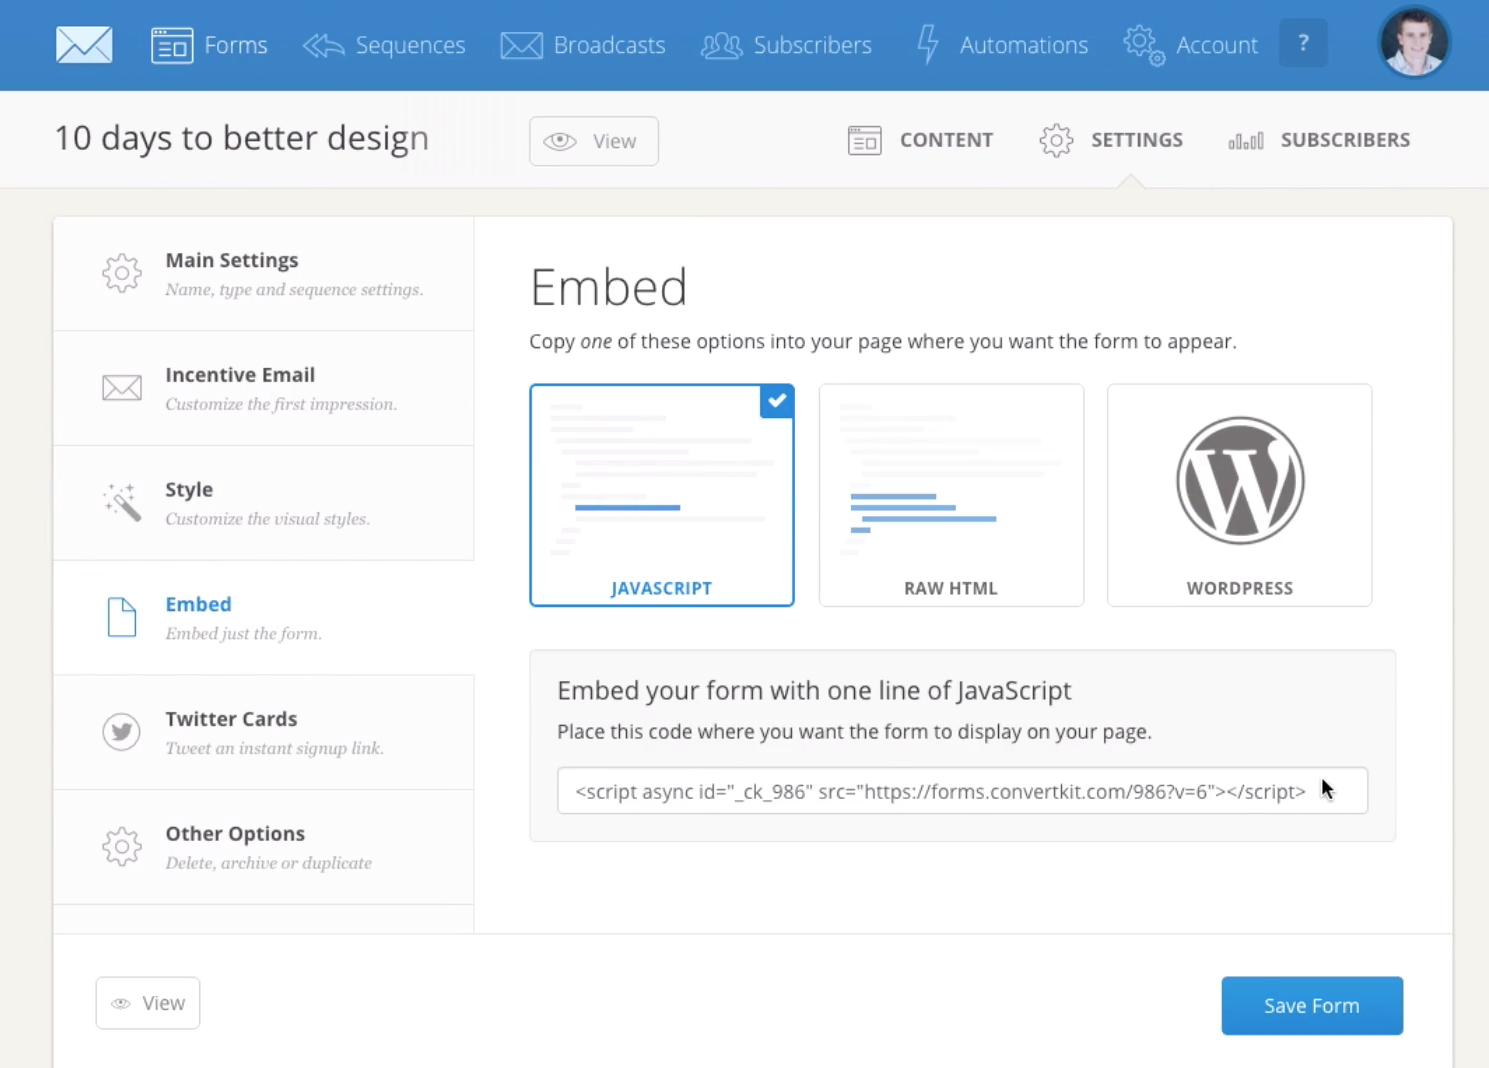 ConvertKit includes multiple options for embedding forms in web pages